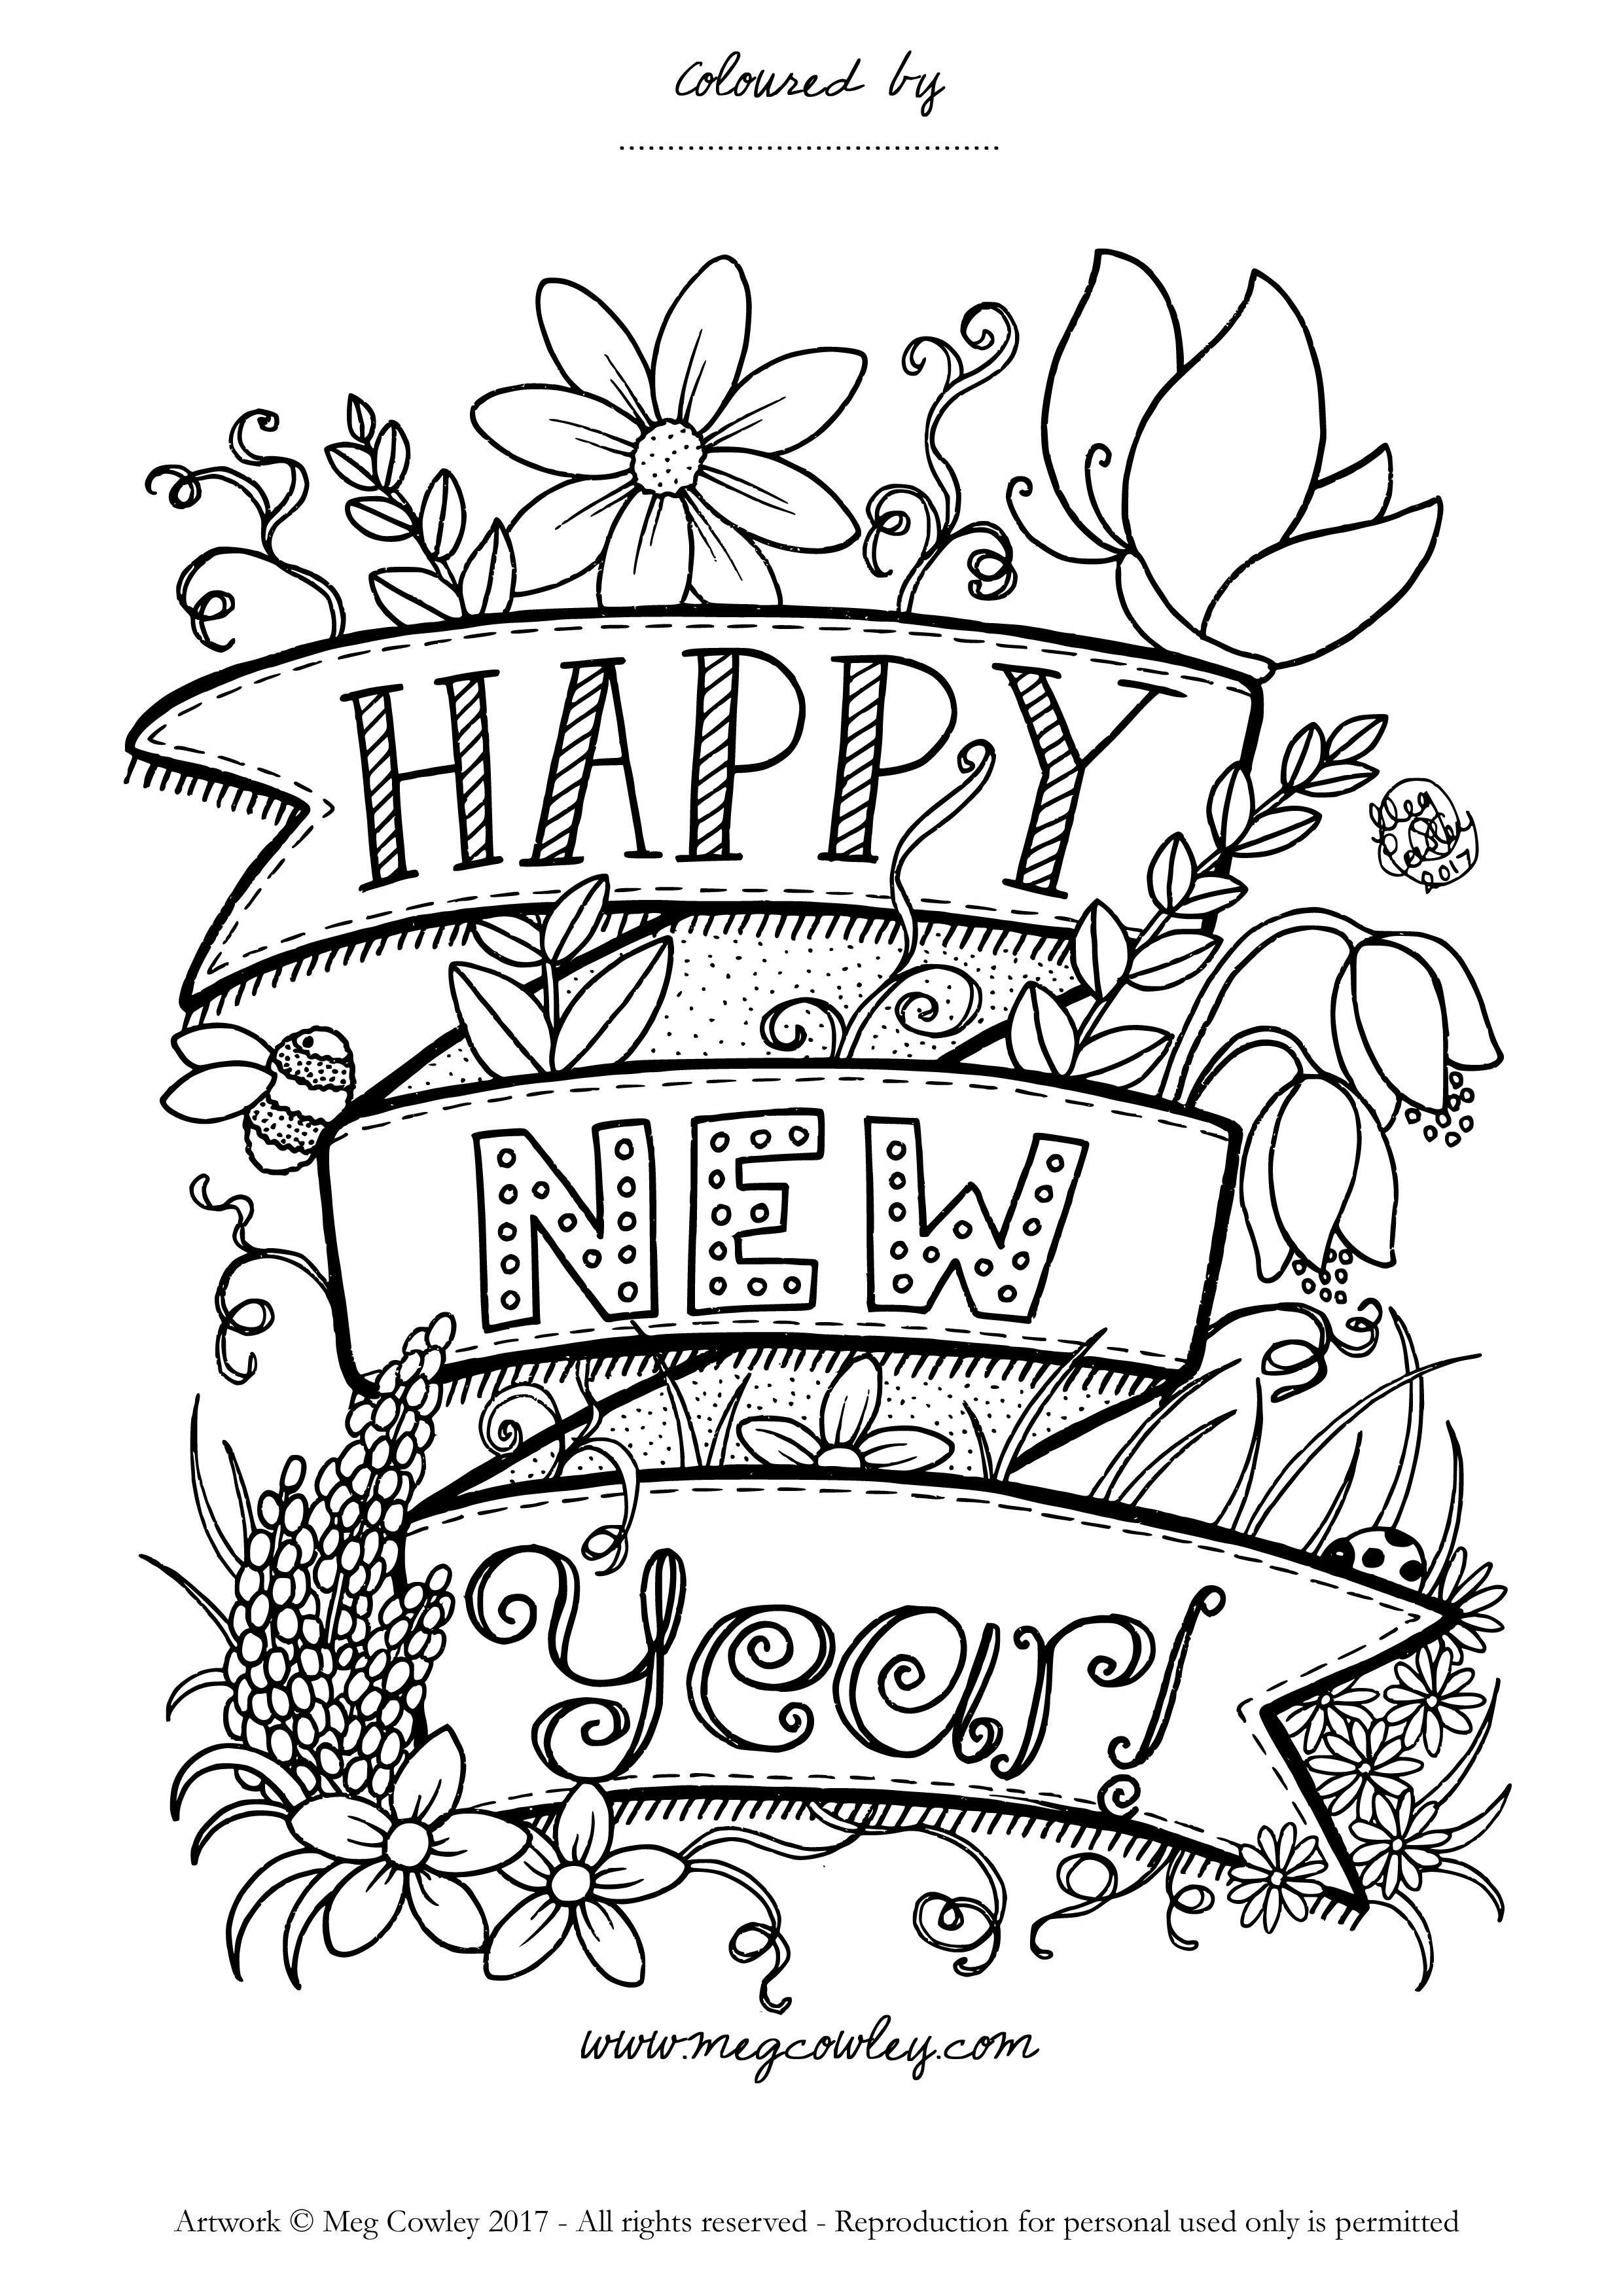 Happy New Year! Enjoy this exclusive coloring page from Meg Cowley ...